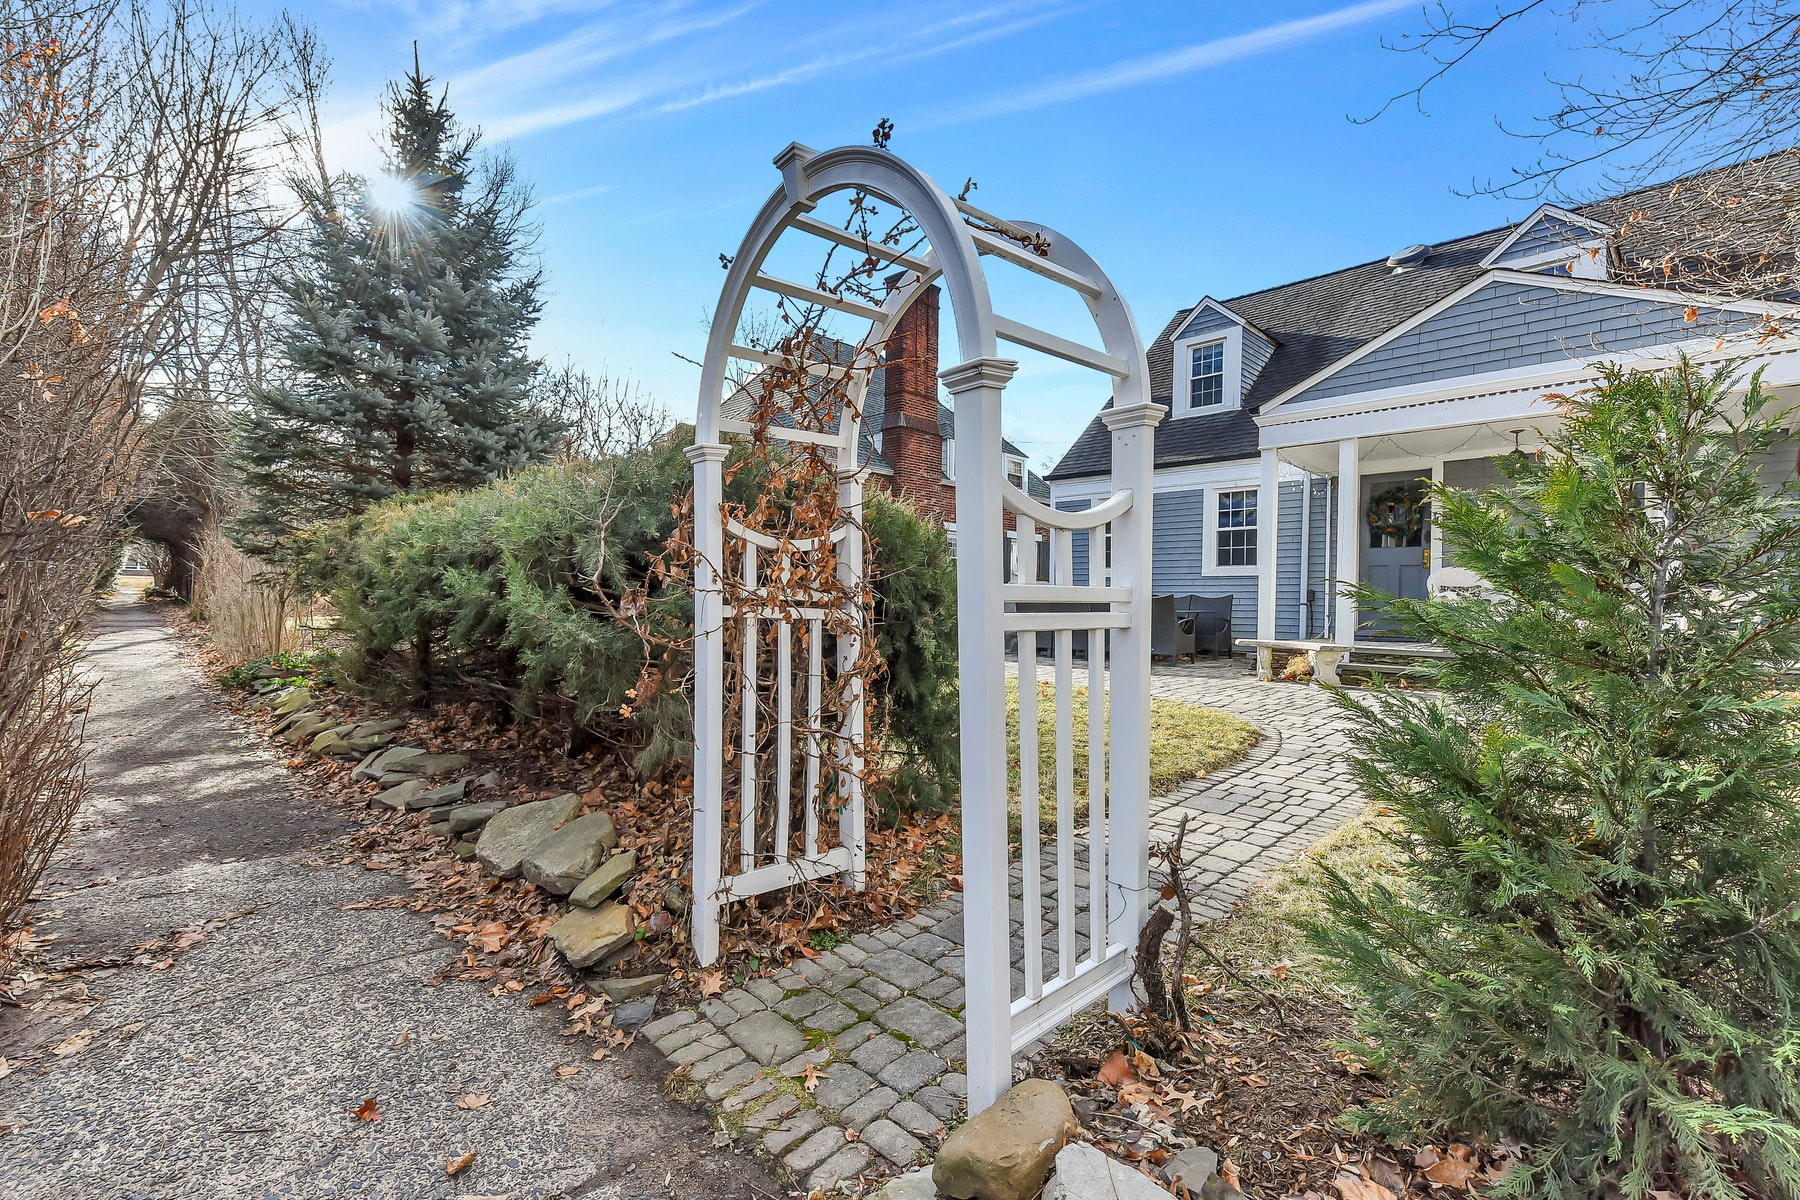 Single Family Home for Sale at Welcome To Historic Radburn! 8 Barry Place, Fair Lawn, New Jersey 07410 United States